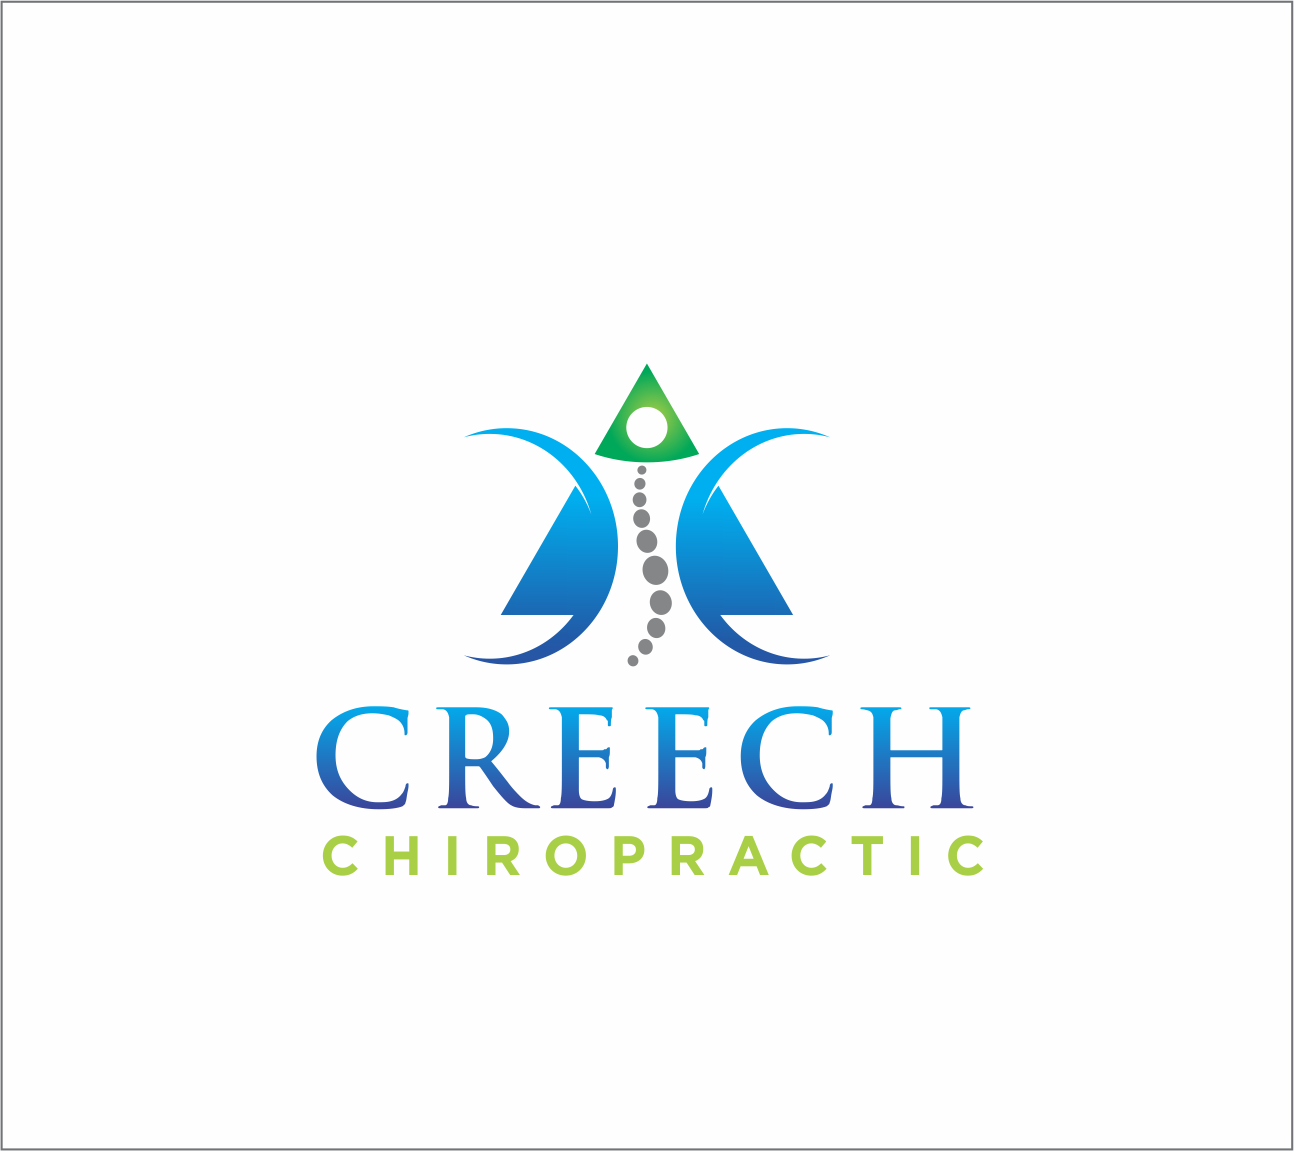 Logo Design by Armada Jamaluddin - Entry No. 110 in the Logo Design Contest Imaginative Logo Design for Creech Chiropractic.